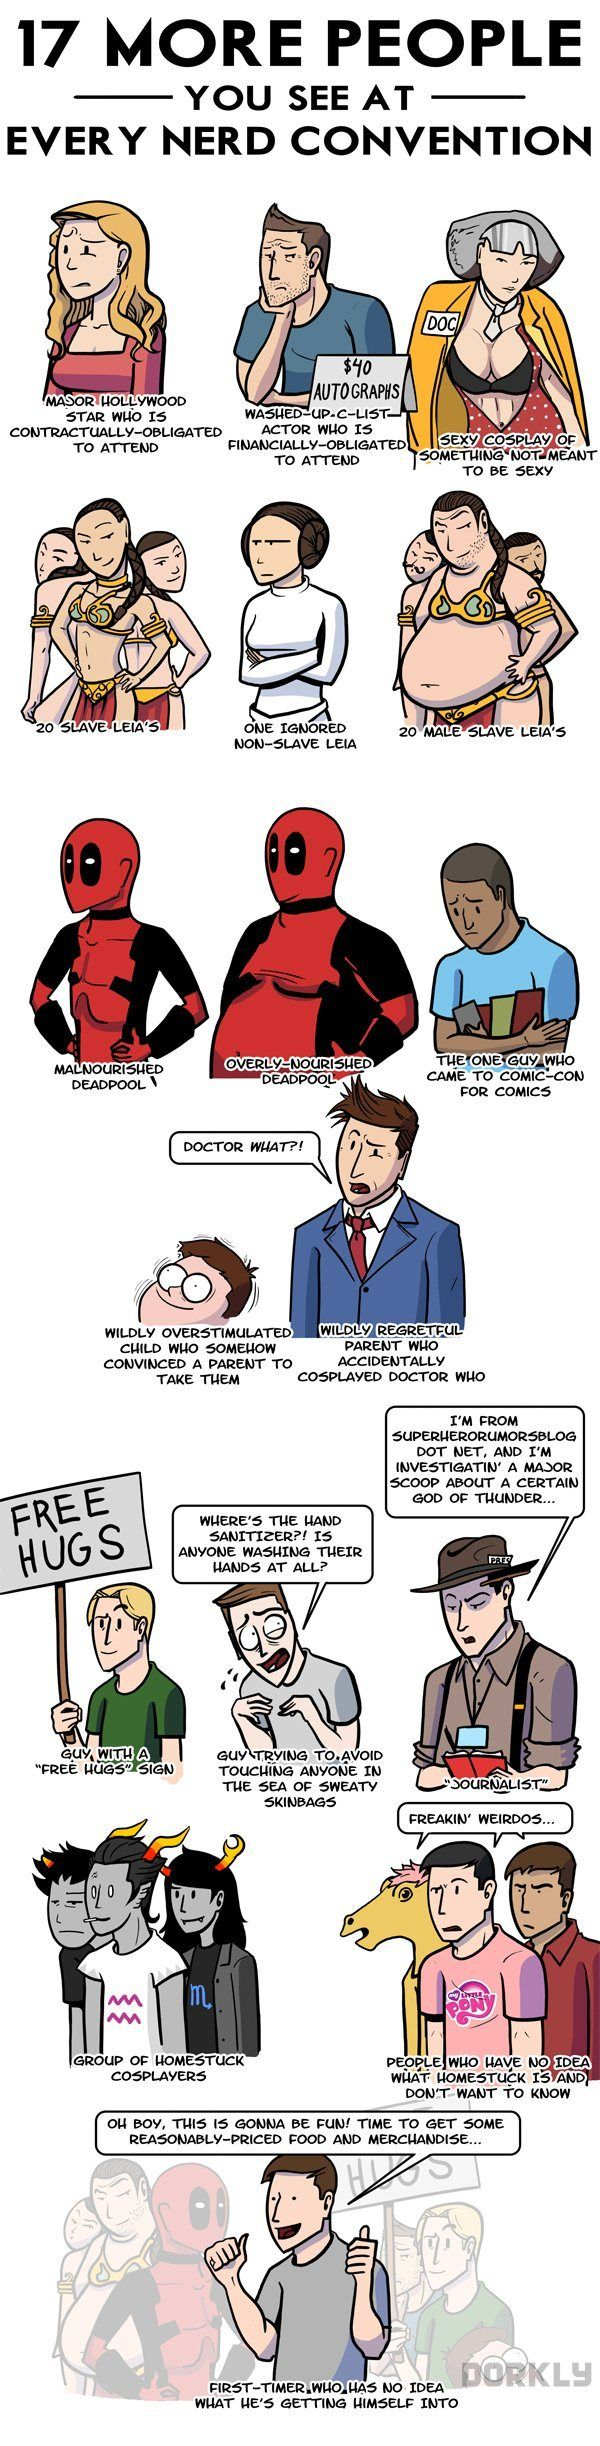 So accurate. And I still love everyone there. One big happy geek family!